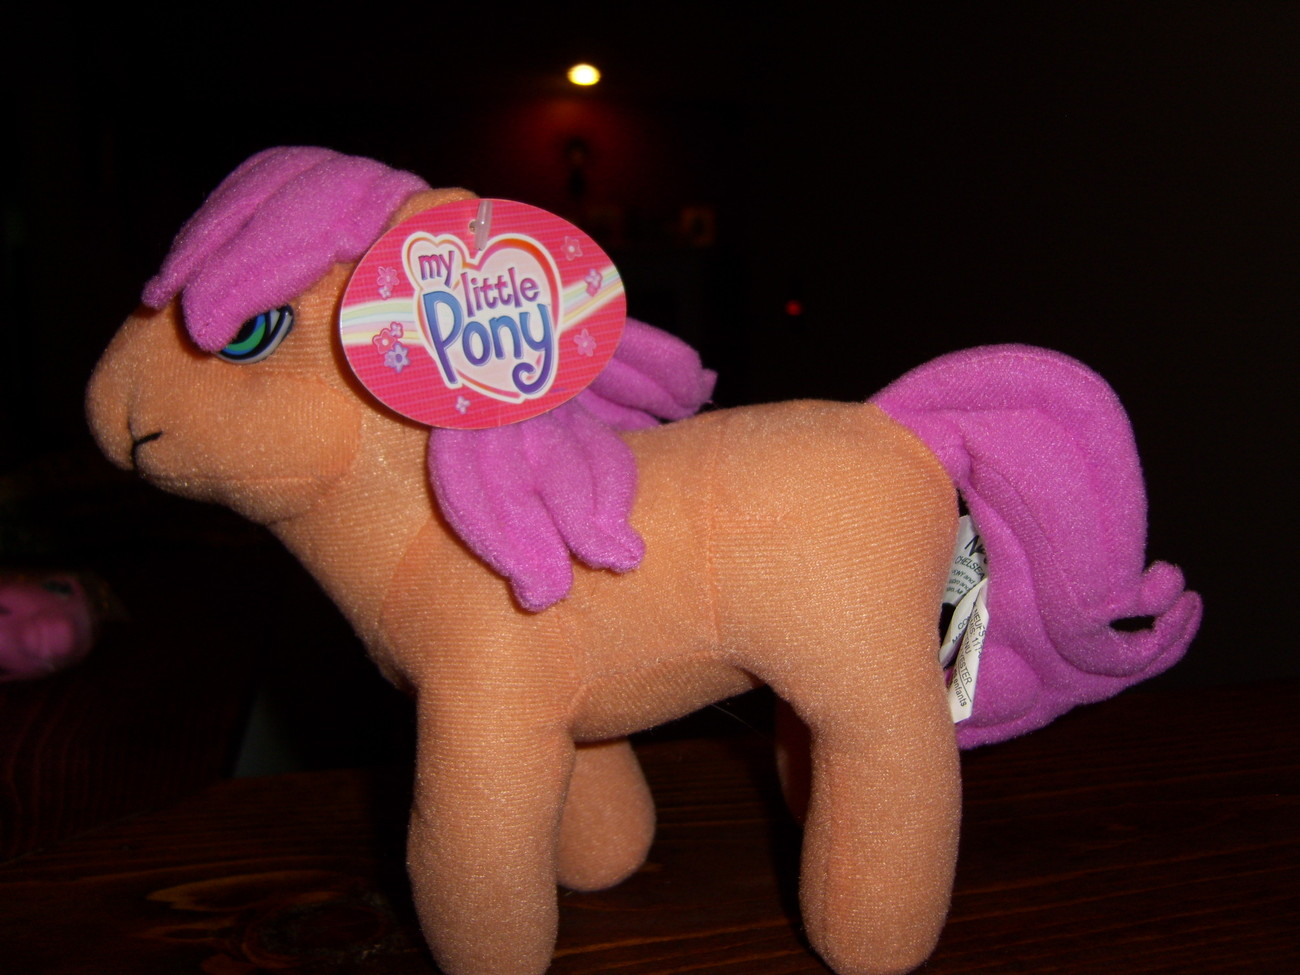 My Little Pony plush with tags Sparkleworks